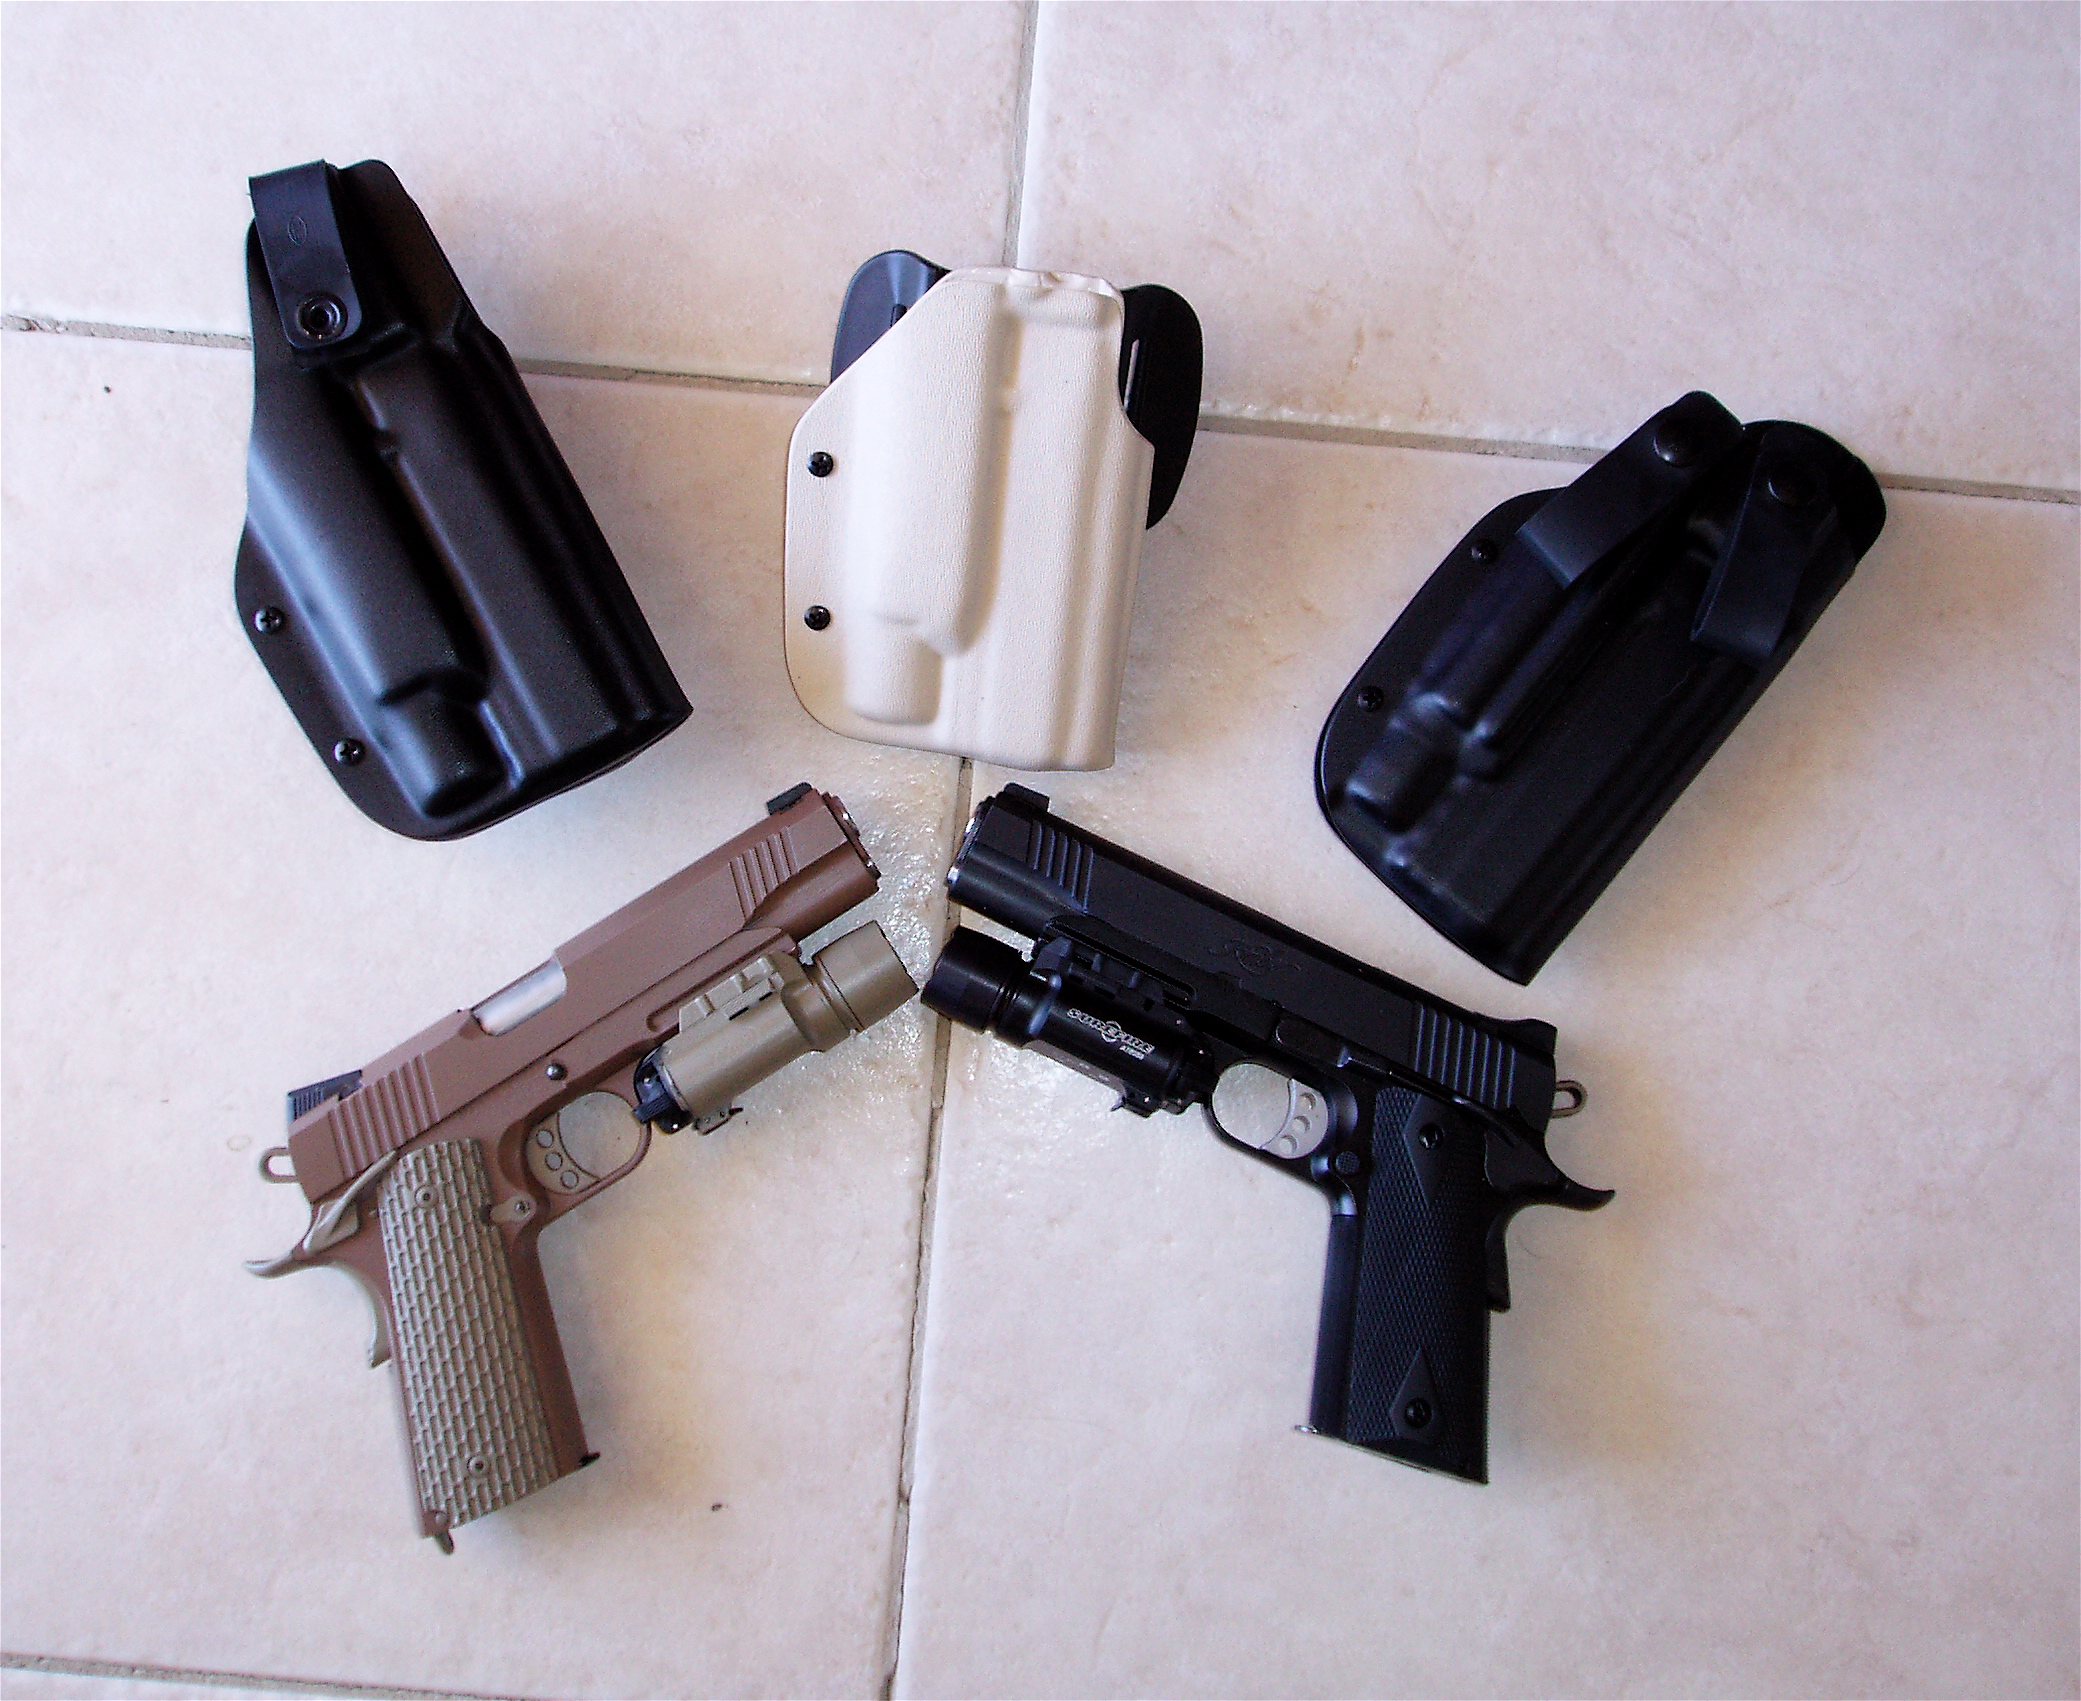 Lawful Carry: Blade-Tech Holsters For Pistols With Tactical Lights